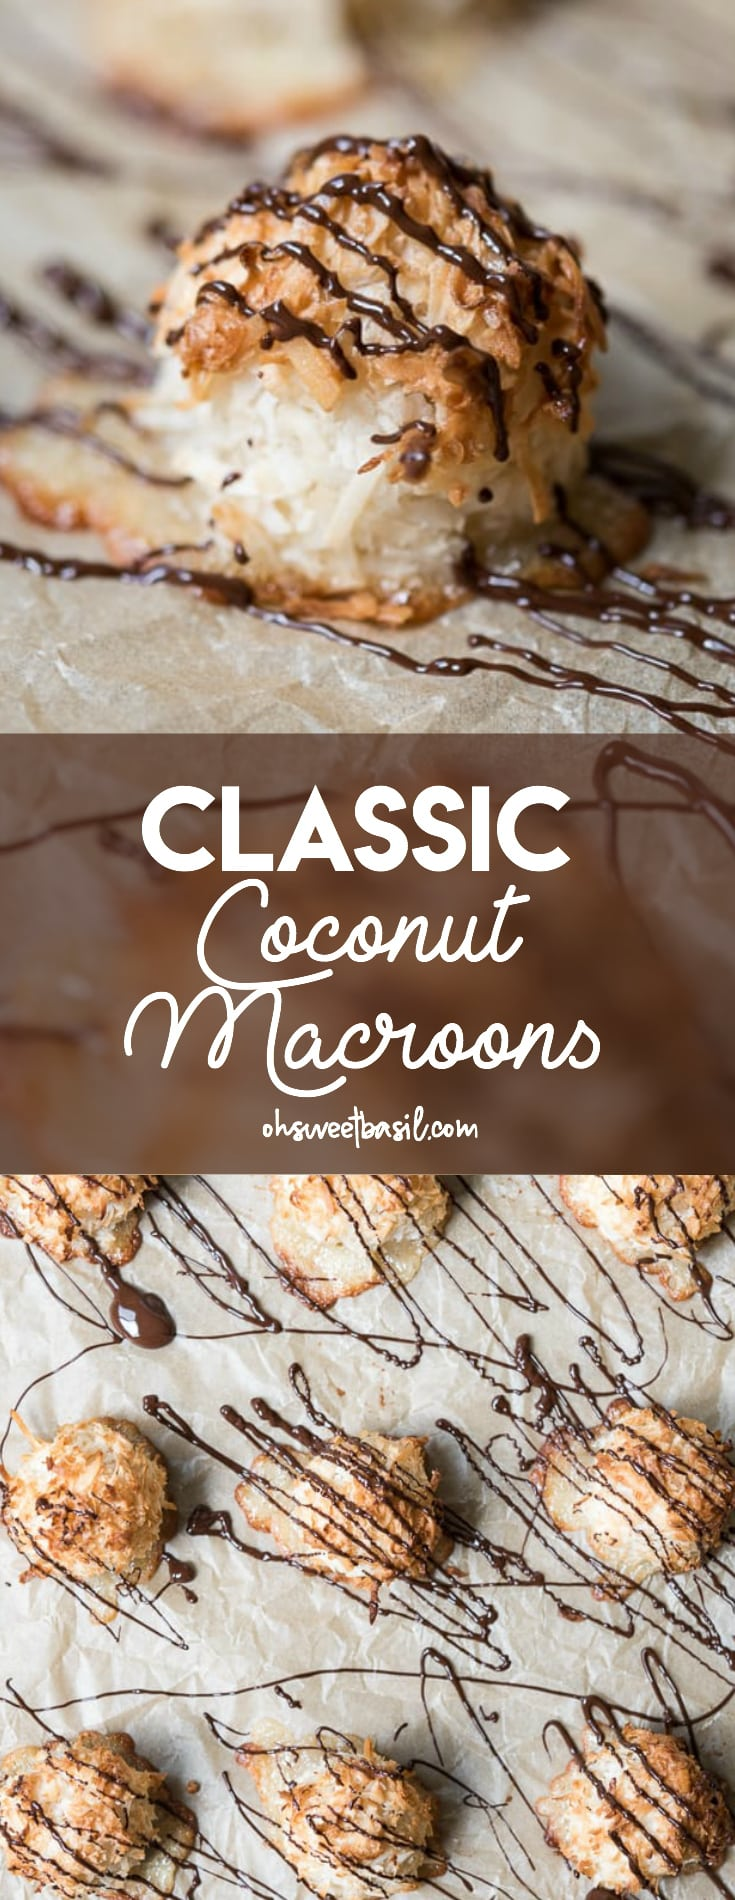 Classic Coconut Macaroons on a baking sheet drizzled with chocolate